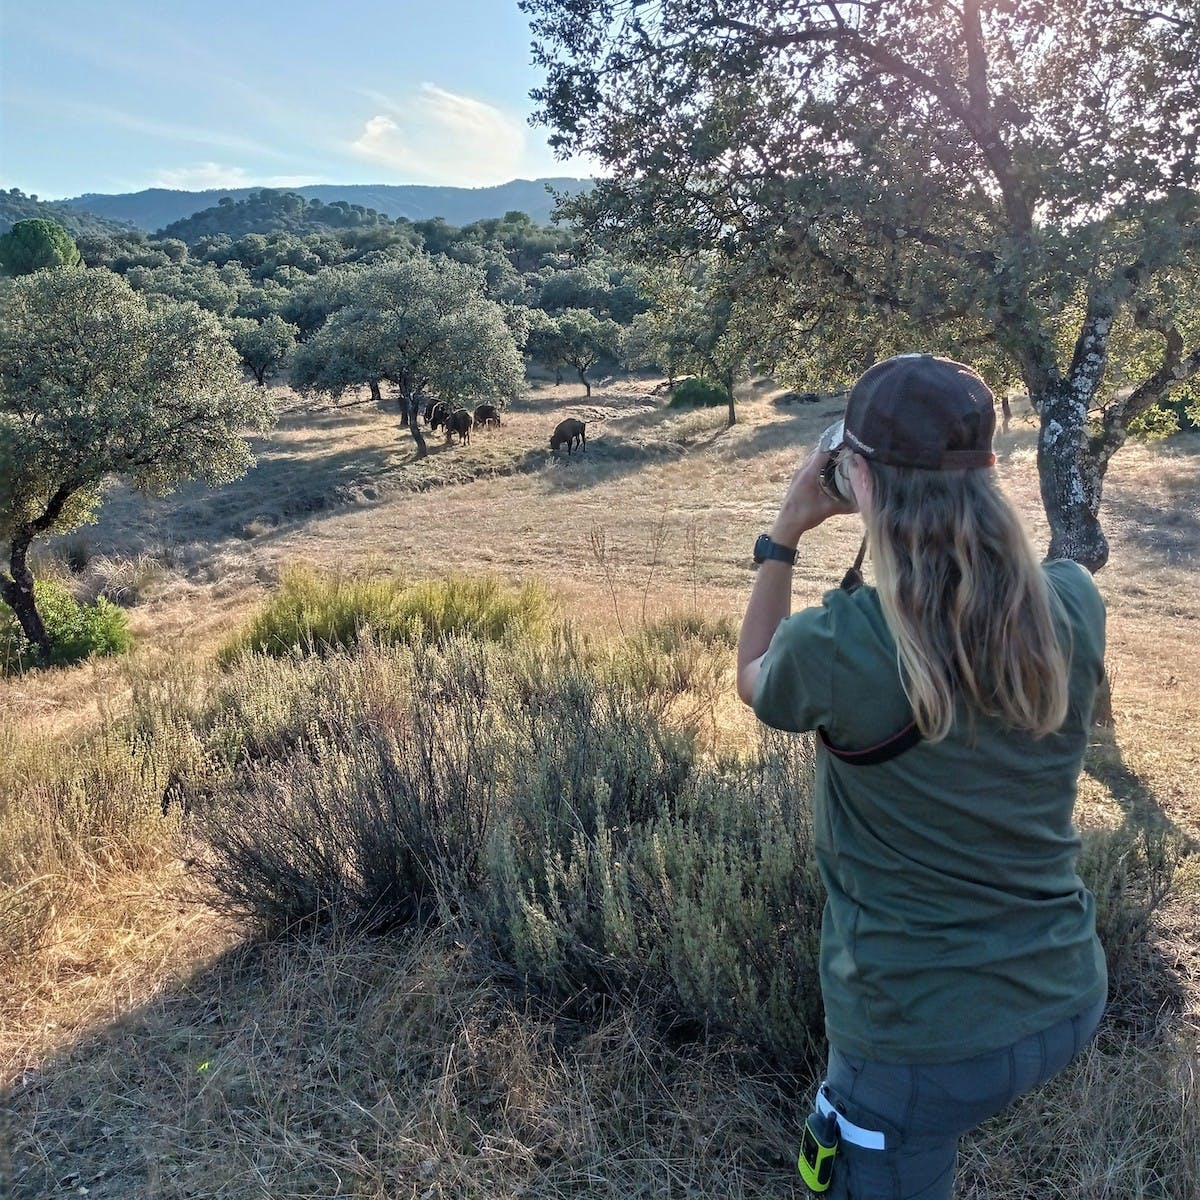 A scientist stands in the right of the image observing bison in the distance among scattered trees.